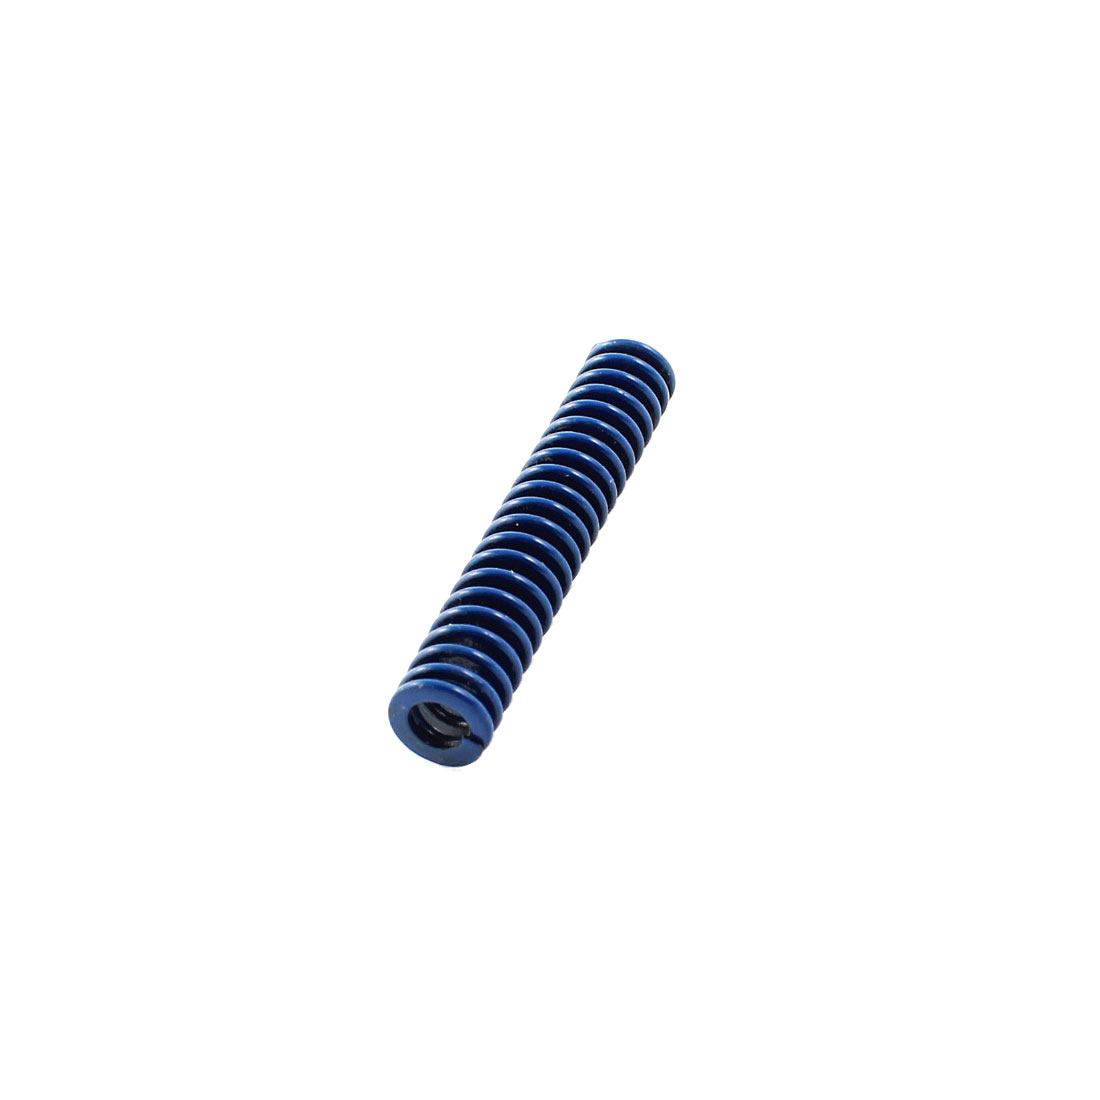 Plastic Injection Mold Die Light Load Spiral Stamping Compression Spring Blue 8mm x 45mm